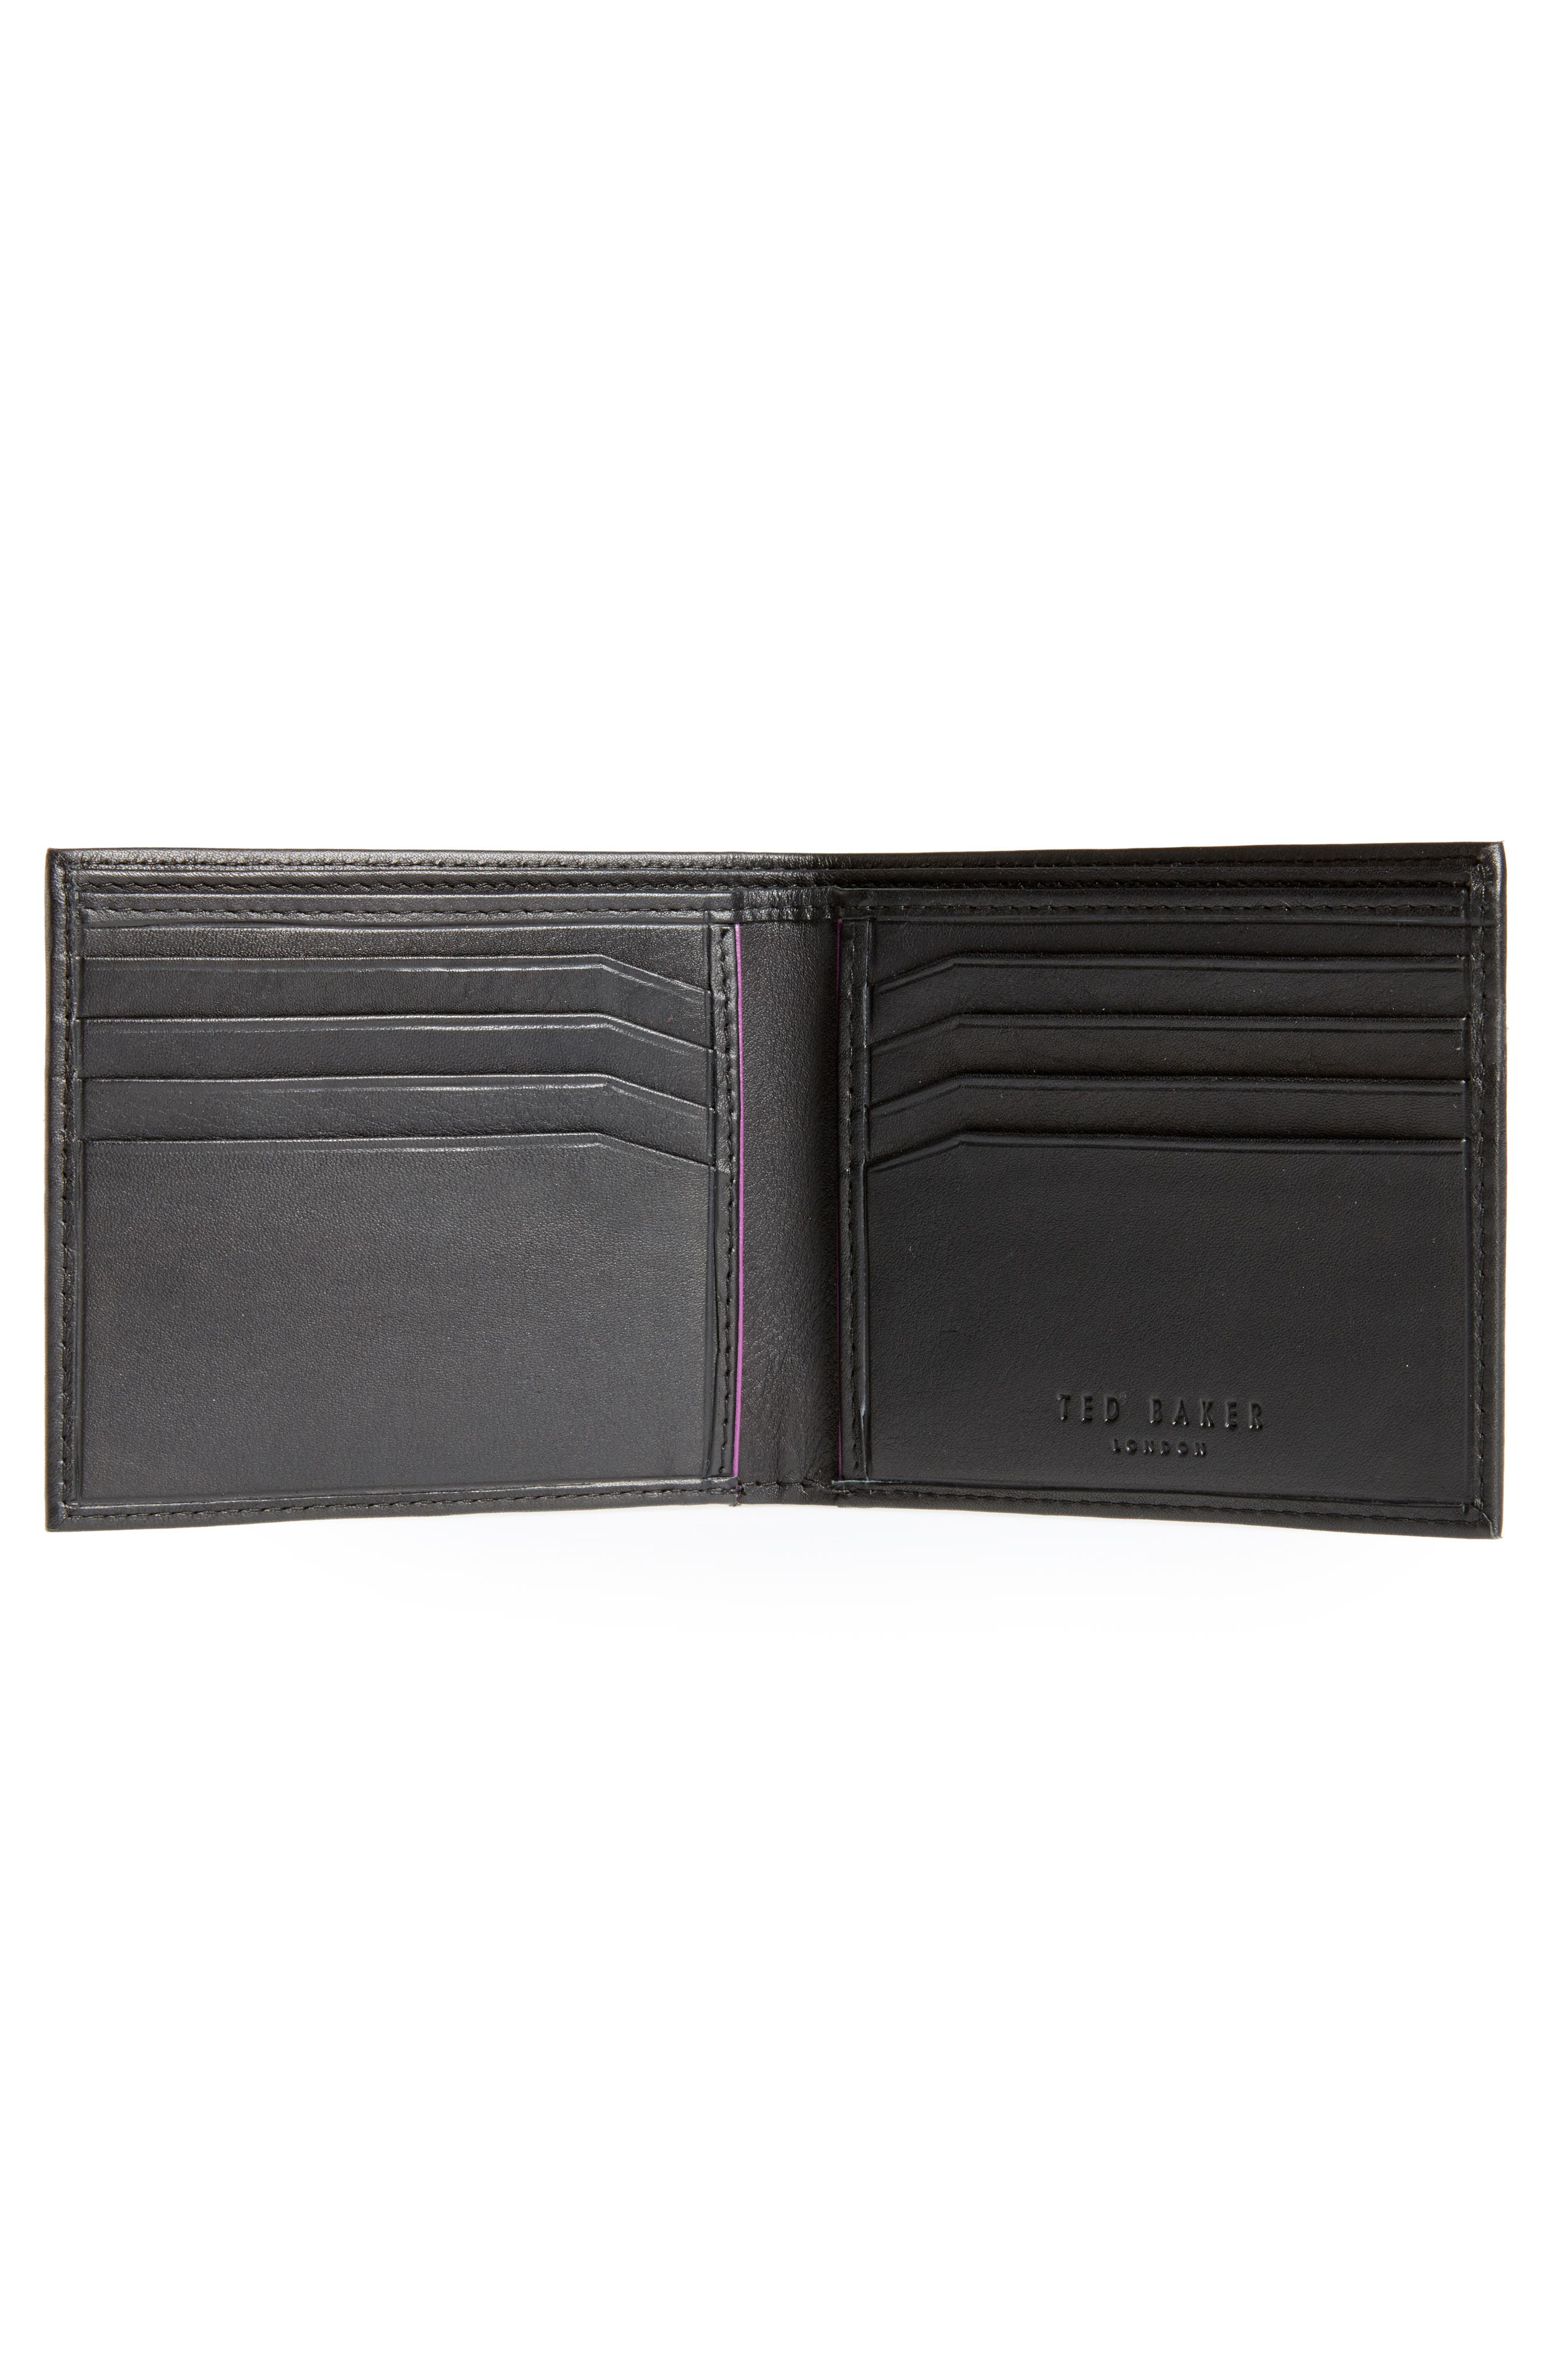 Figgy Inset Spine Leather Wallet,                             Alternate thumbnail 2, color,                             Black